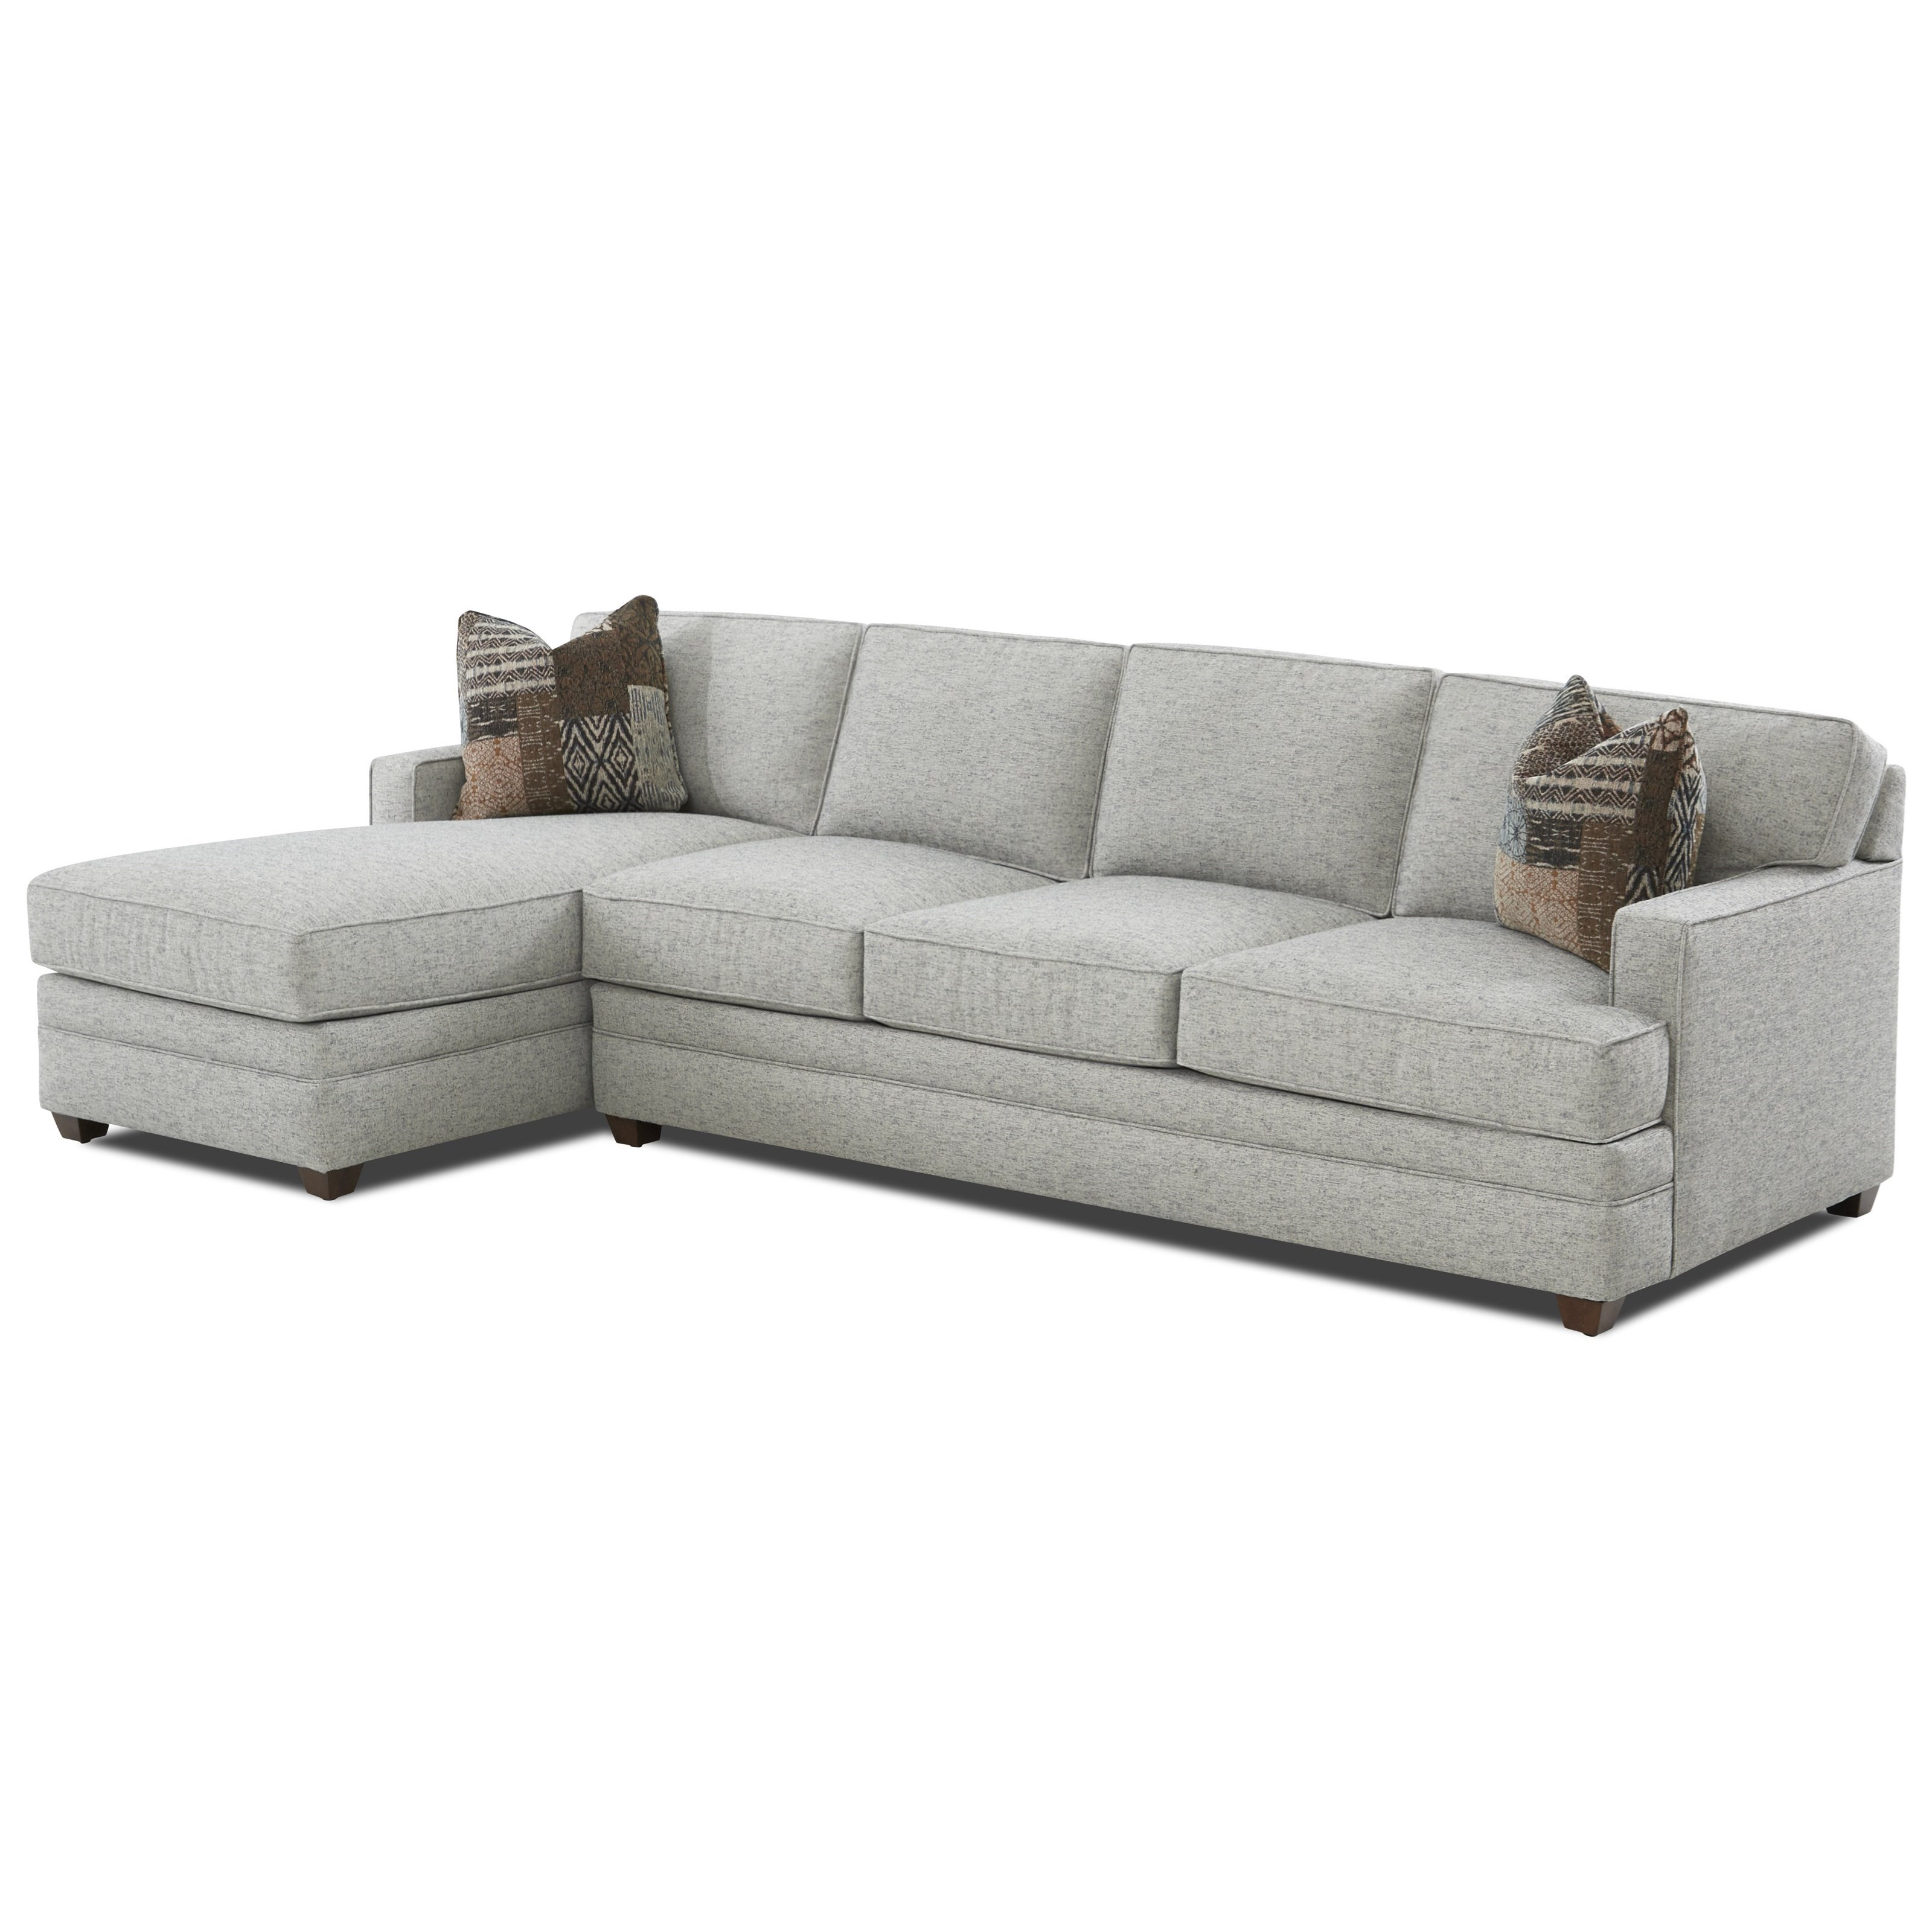 Living Your Way 2-Piece Sectional by Klaussner at Catalog Outlet